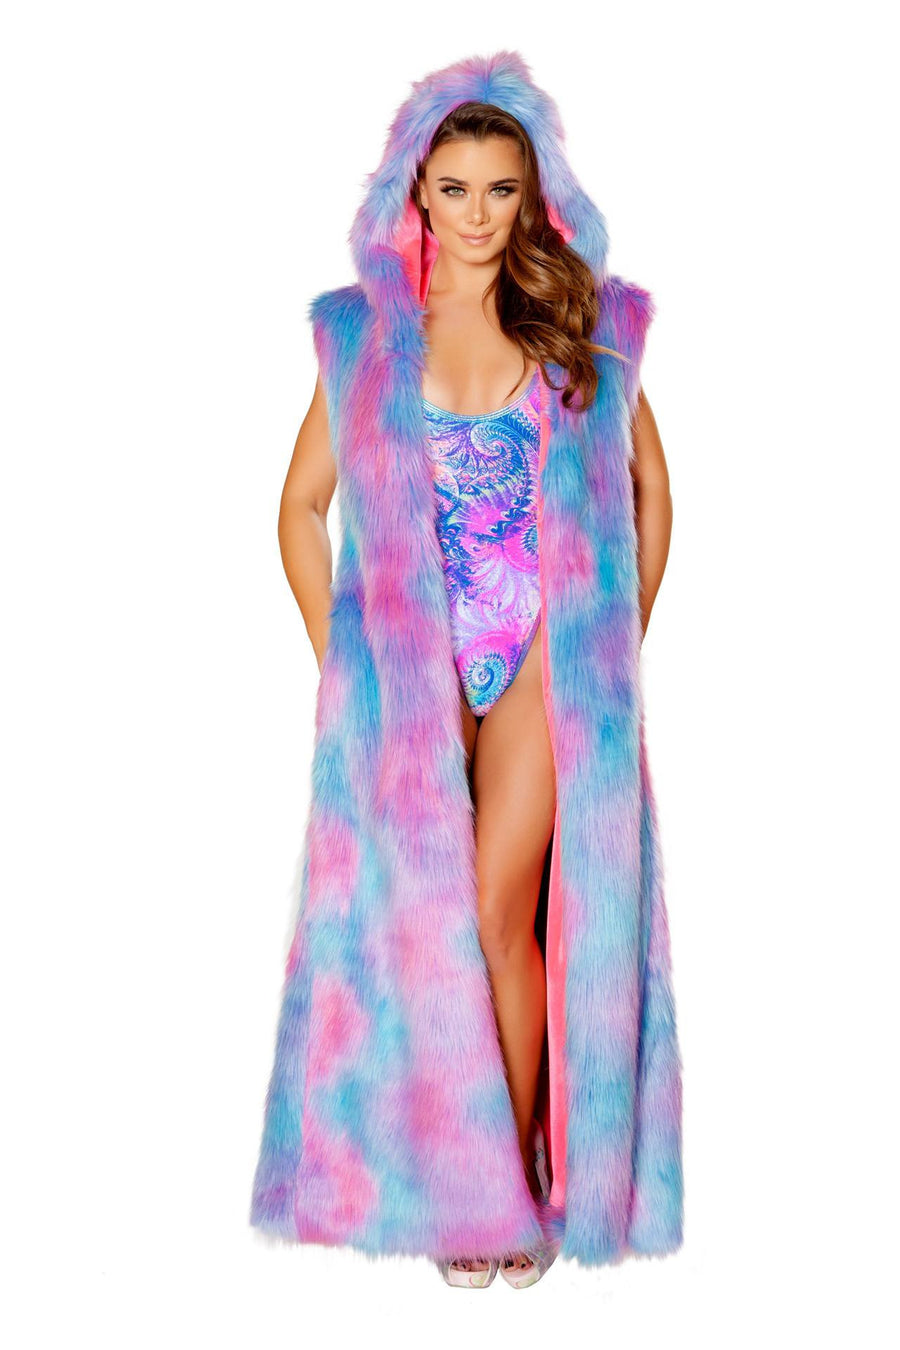 J-Valentine Cotton Kandy Hooded Duster - Fur Hooded Duster, J-Valentine, YourLamode